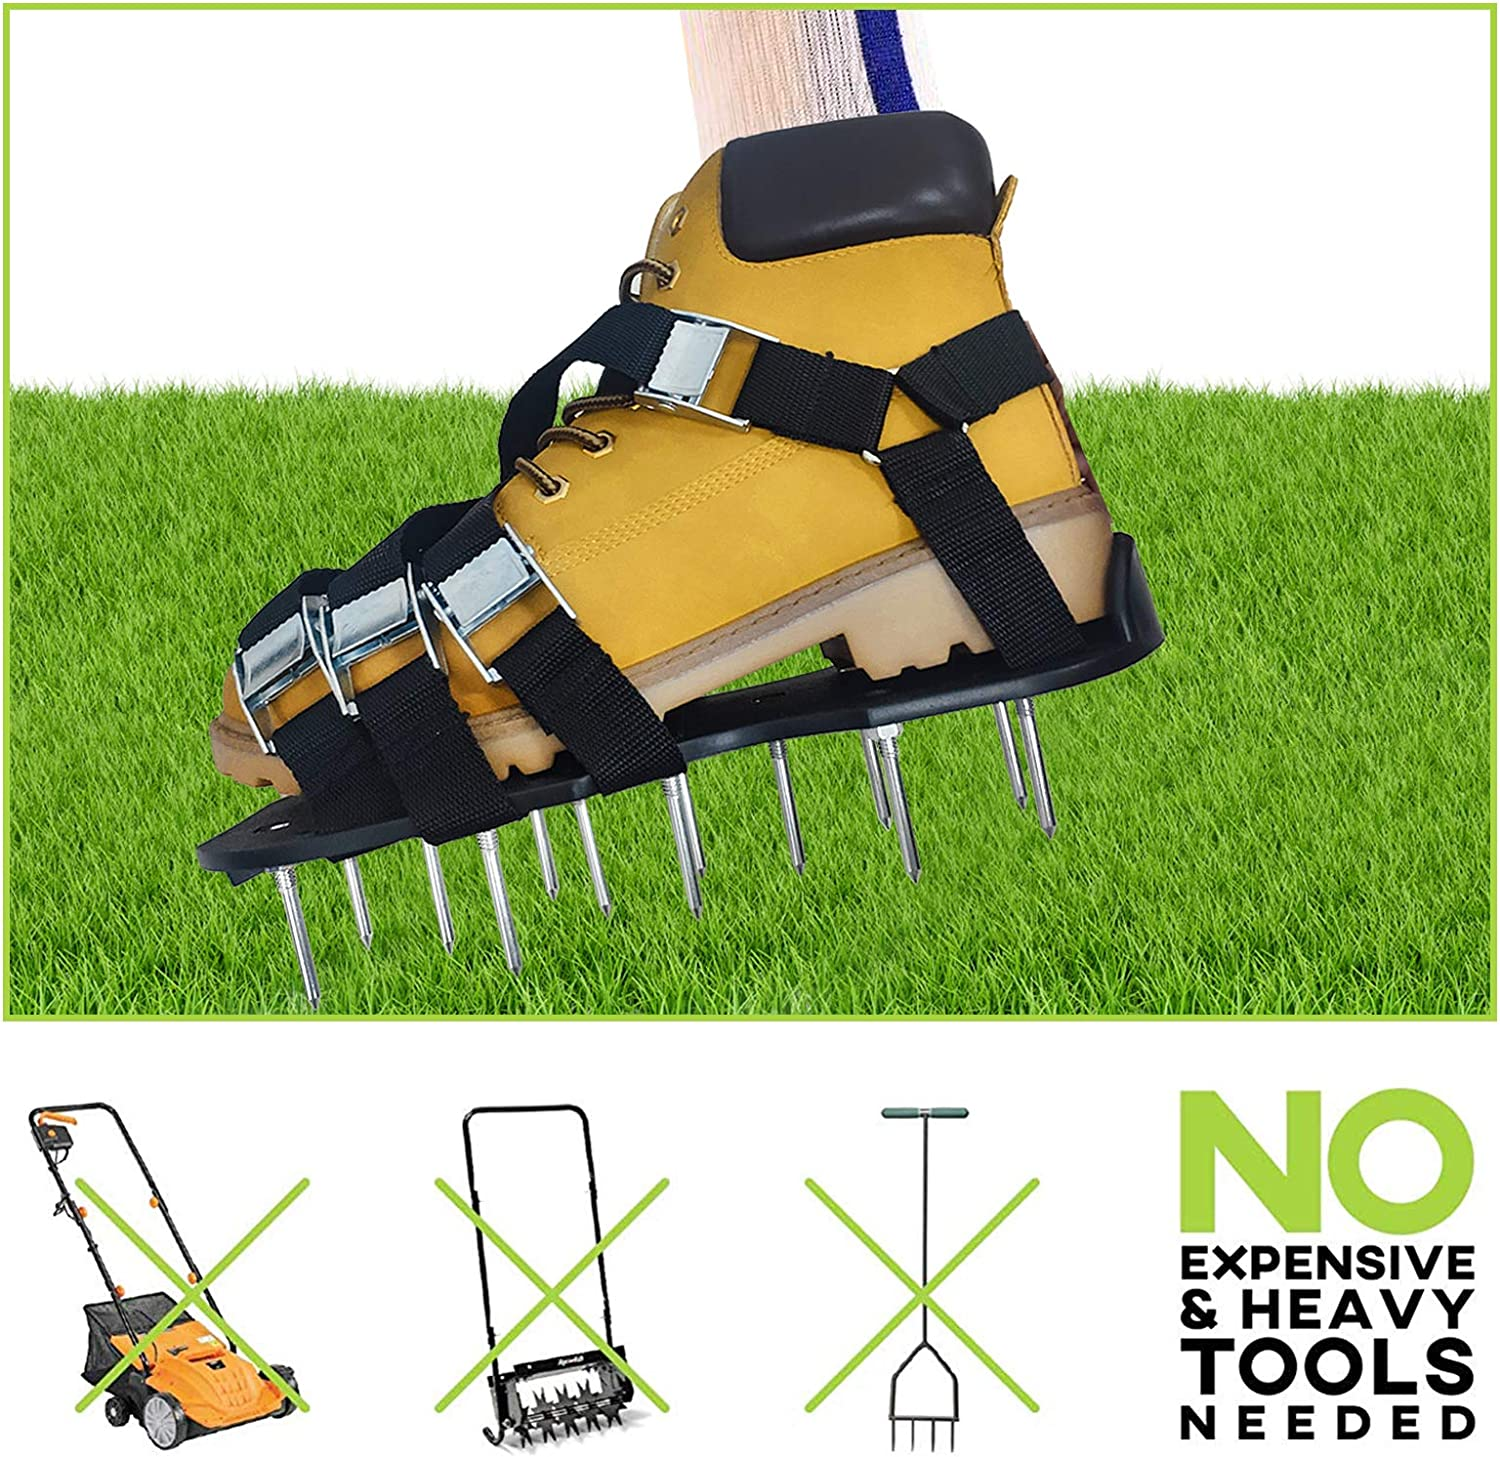 Easiest to USE Lawn Aerator Sandal Heavy Duty Spiked Sandals for Aerating Your Lawn or Yard Oiuros Lawn Aerator Shoes